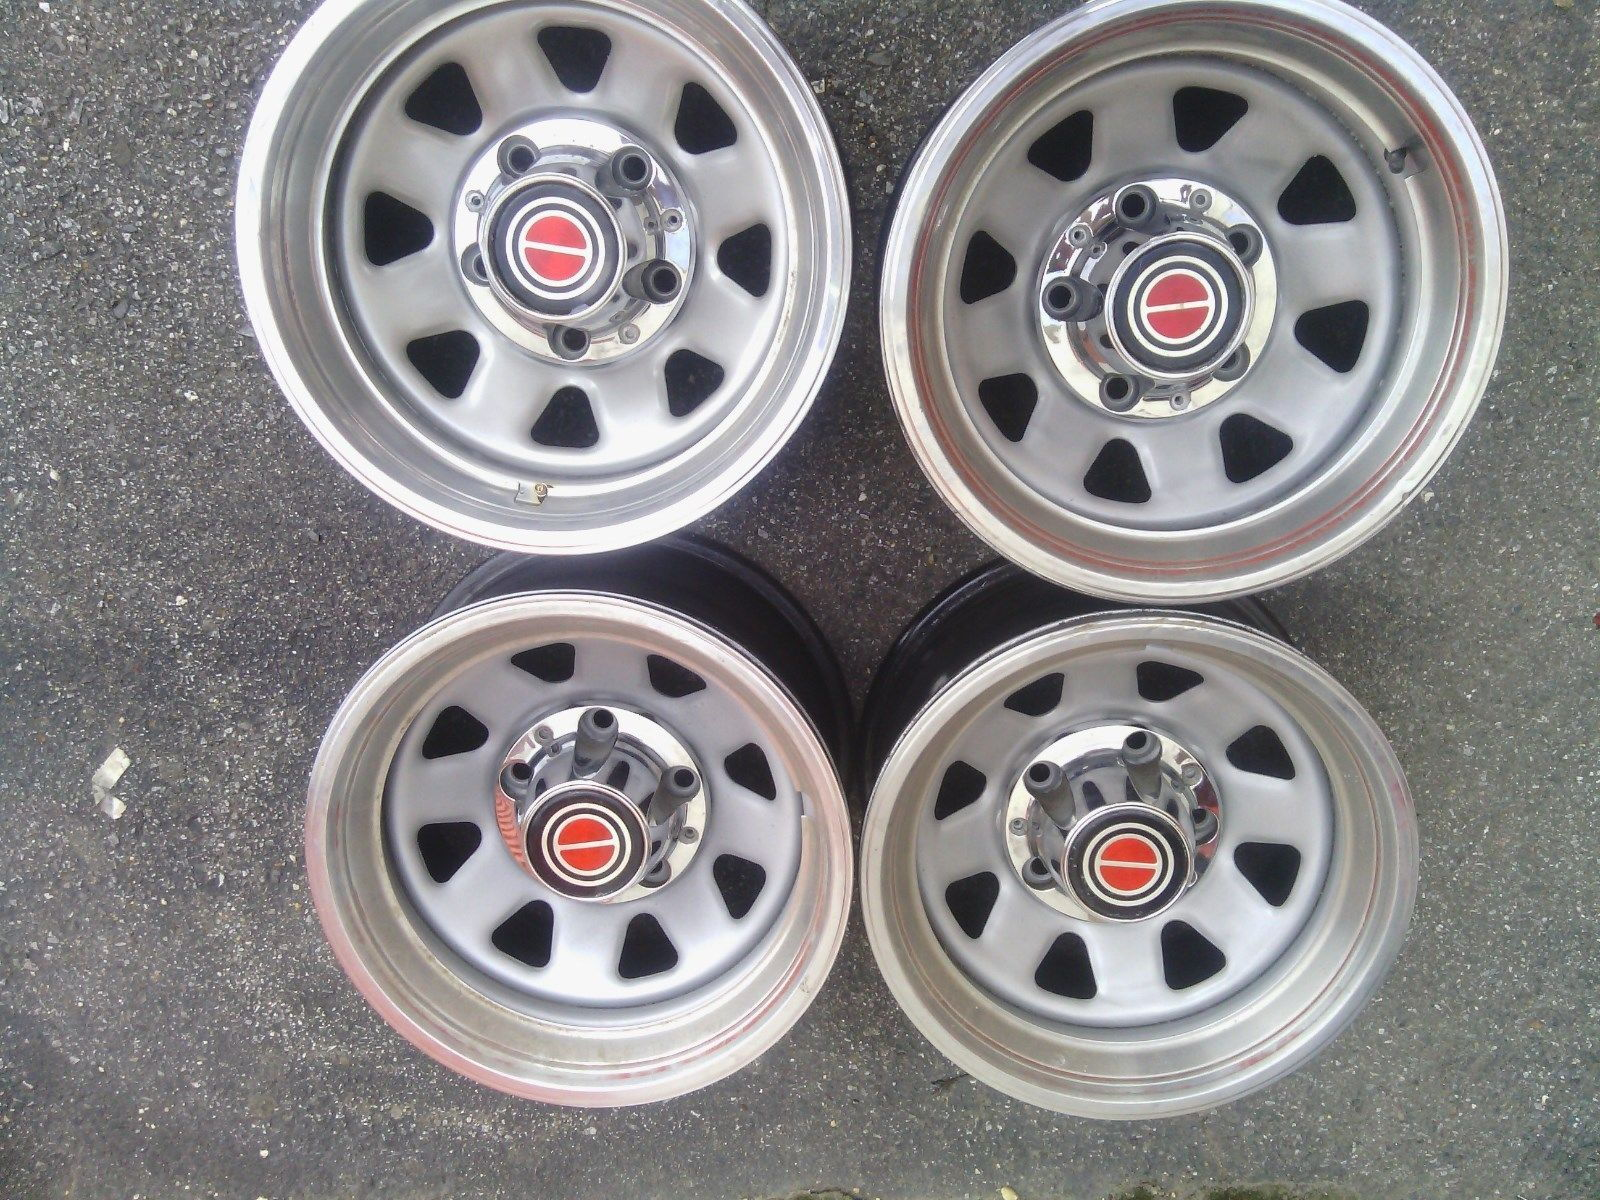 Ford f150 bronco rally wheels 15 x 8 w trim rings center caps ford truck enthusiasts forums